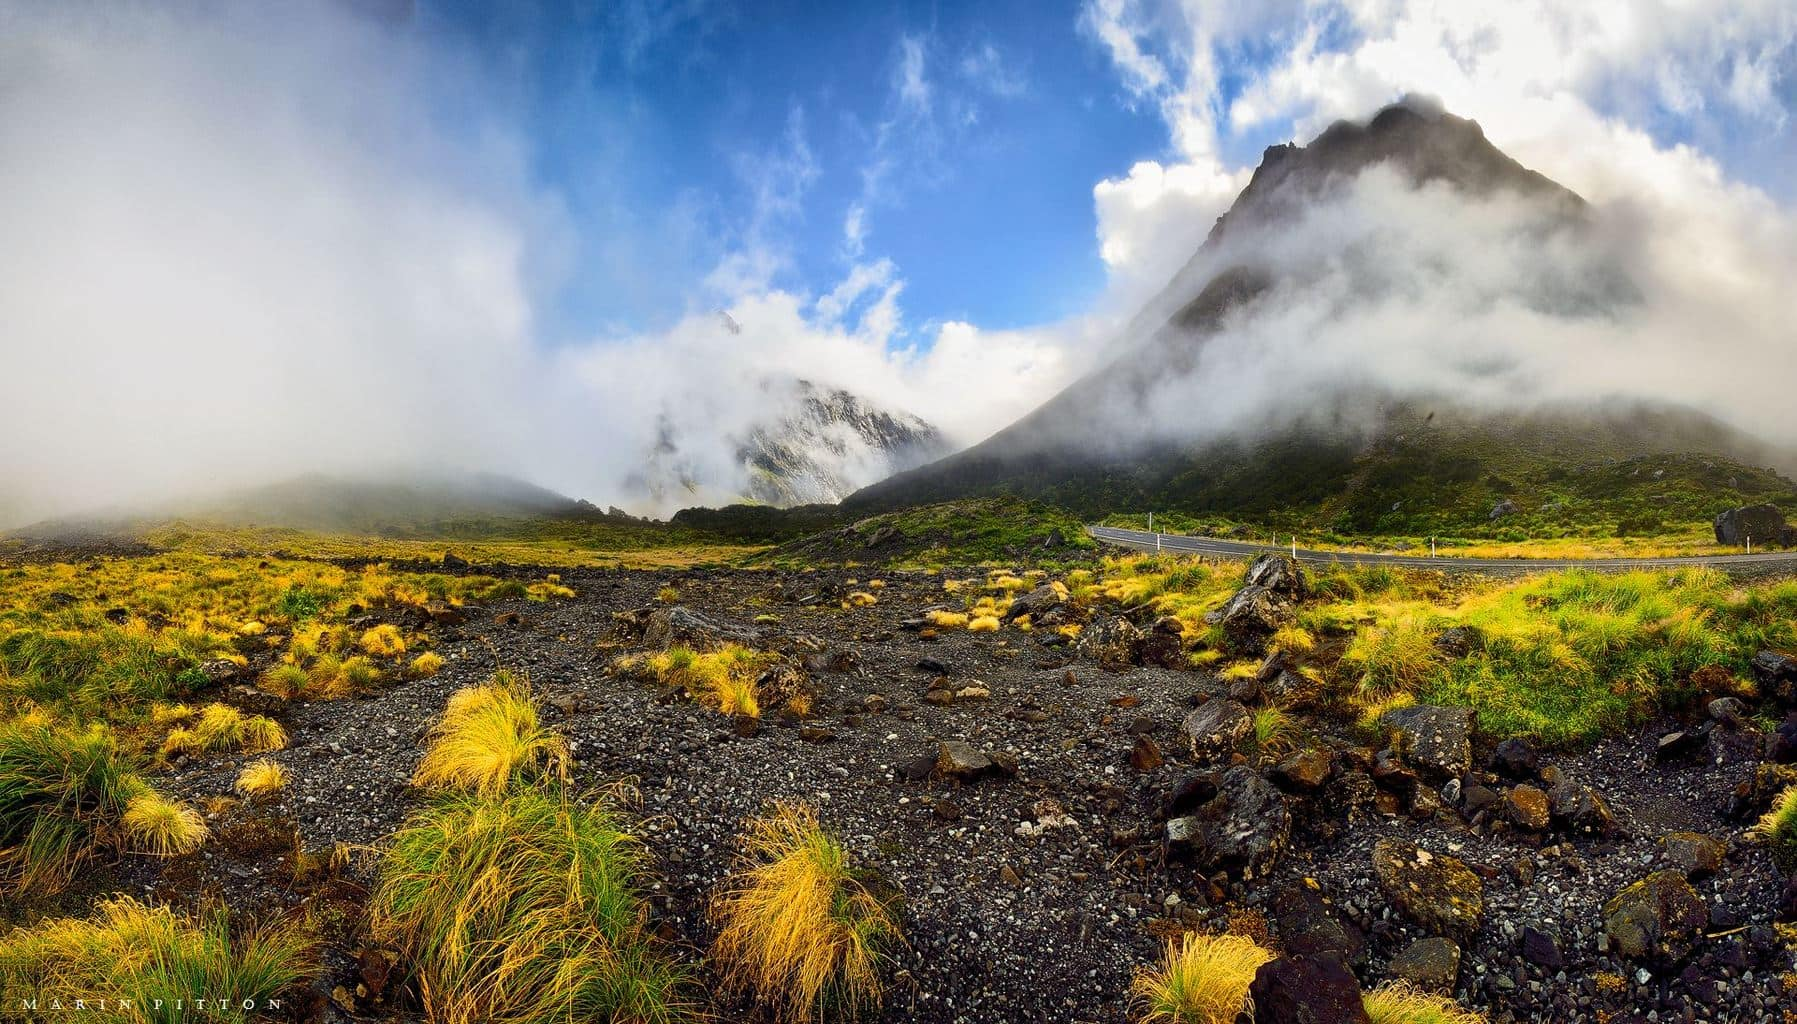 Greetings from New Zeakand - south island This is taken few days ago on our way to national park Milford sound.. we where surrounded by low clouds in early morning.. what an amazing view was that...for a lifetime memory..